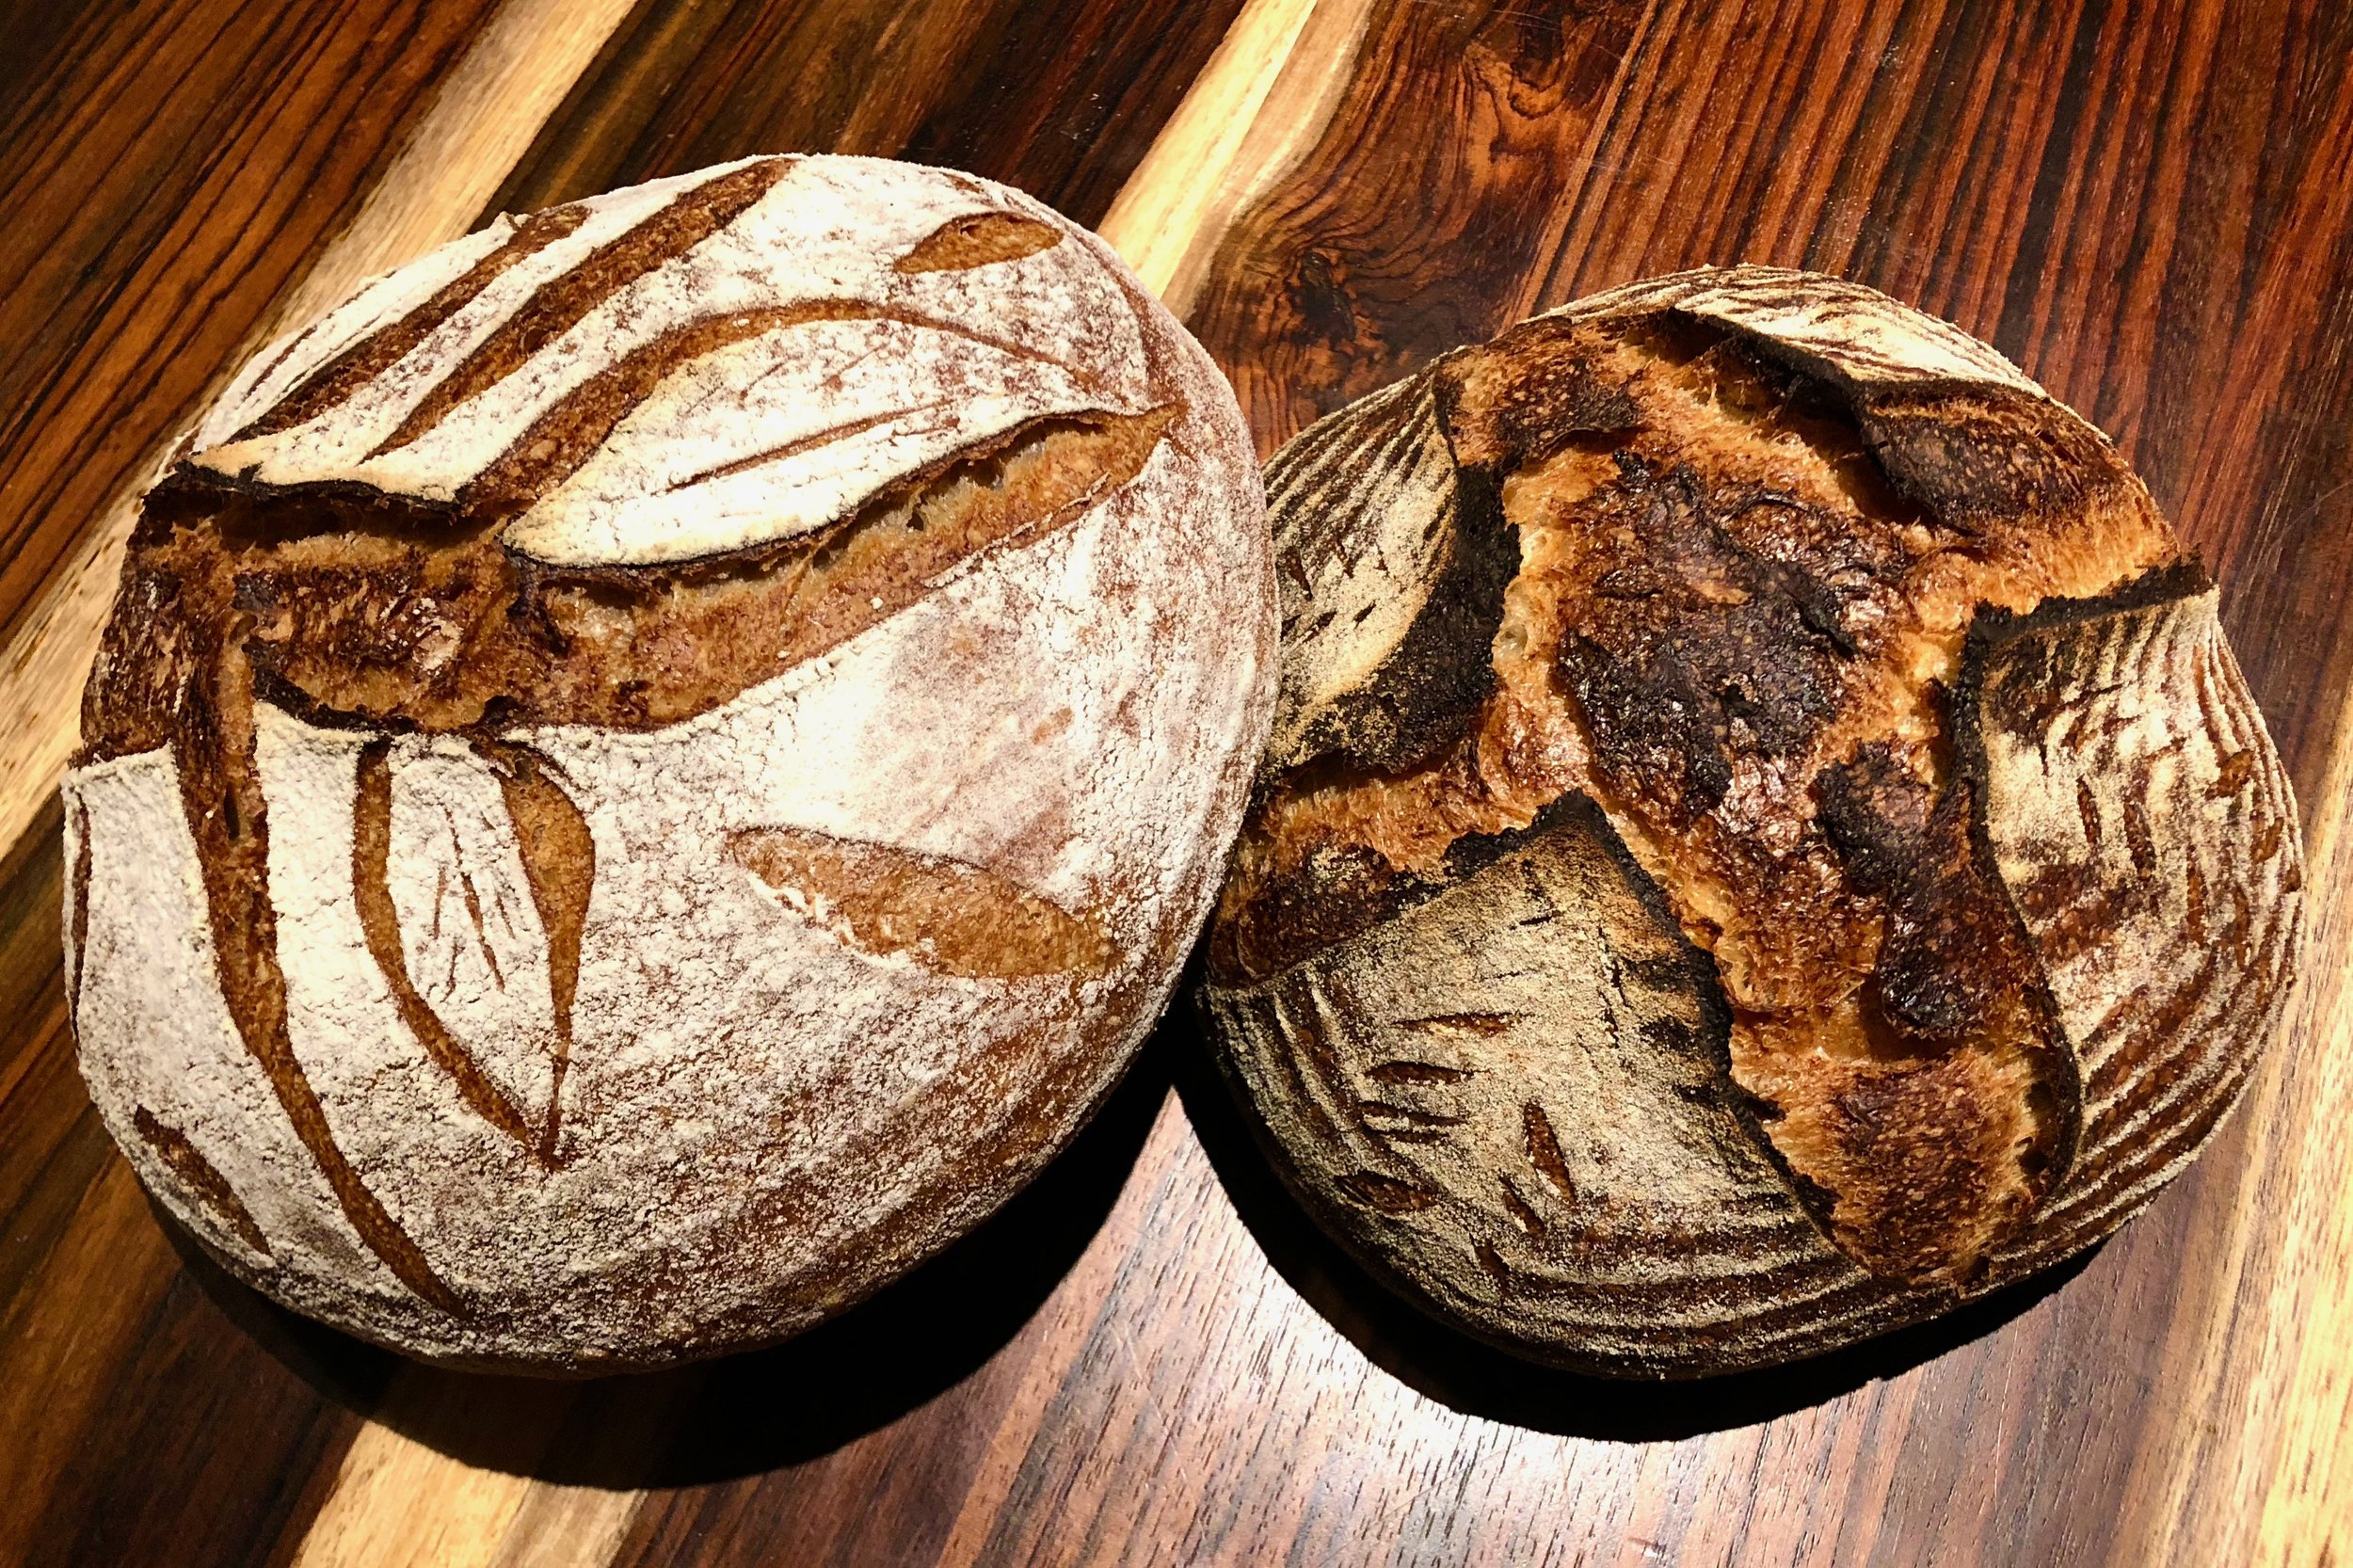 His & Hers Sourdough Bread